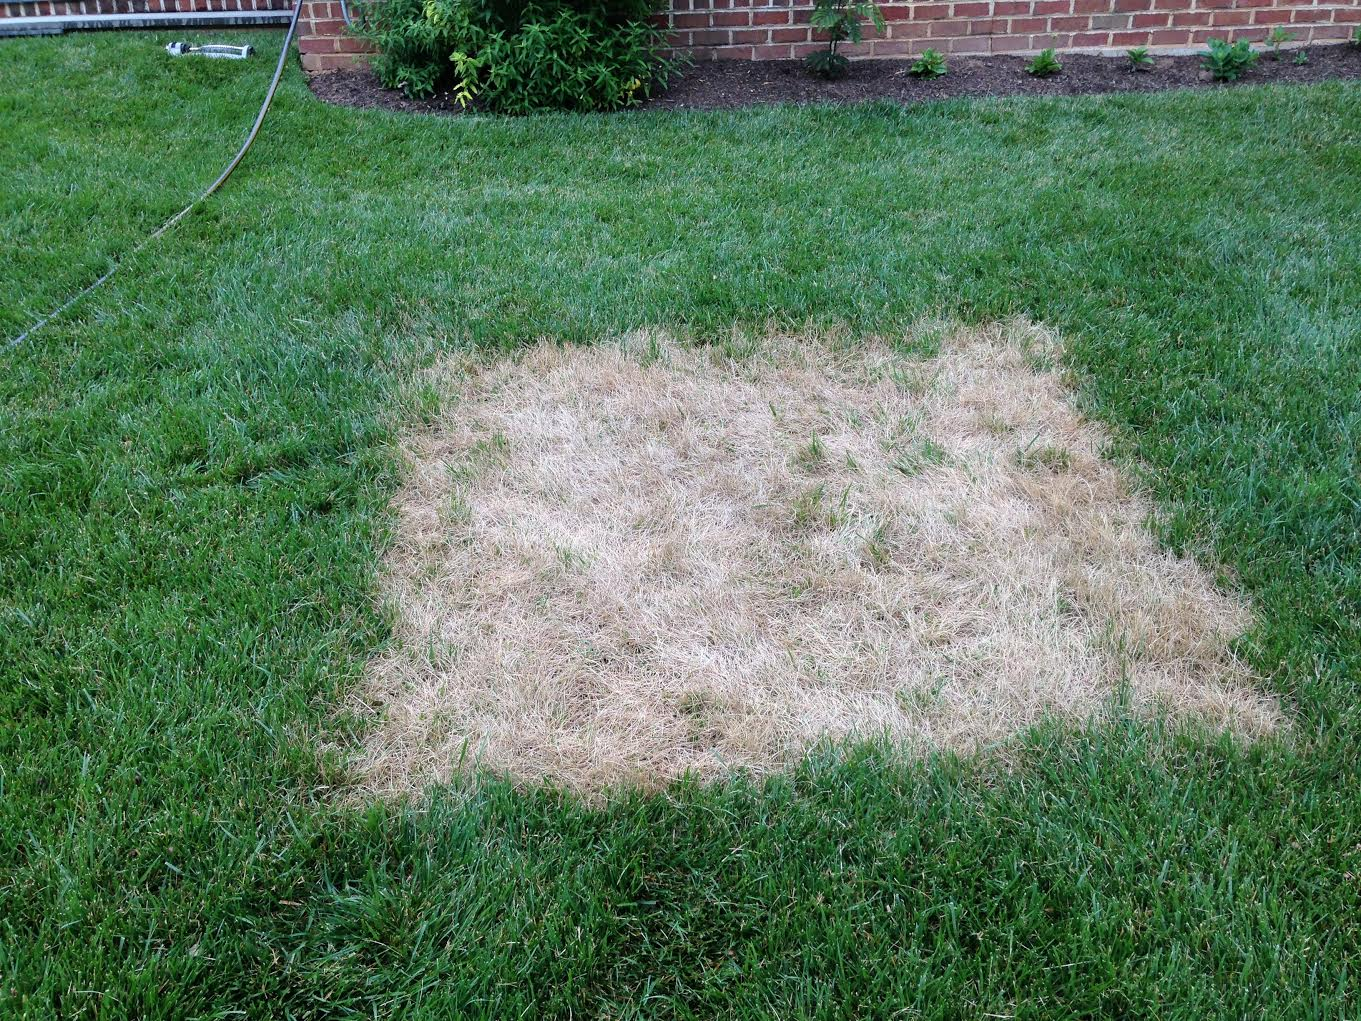 Damaged Lawn Square